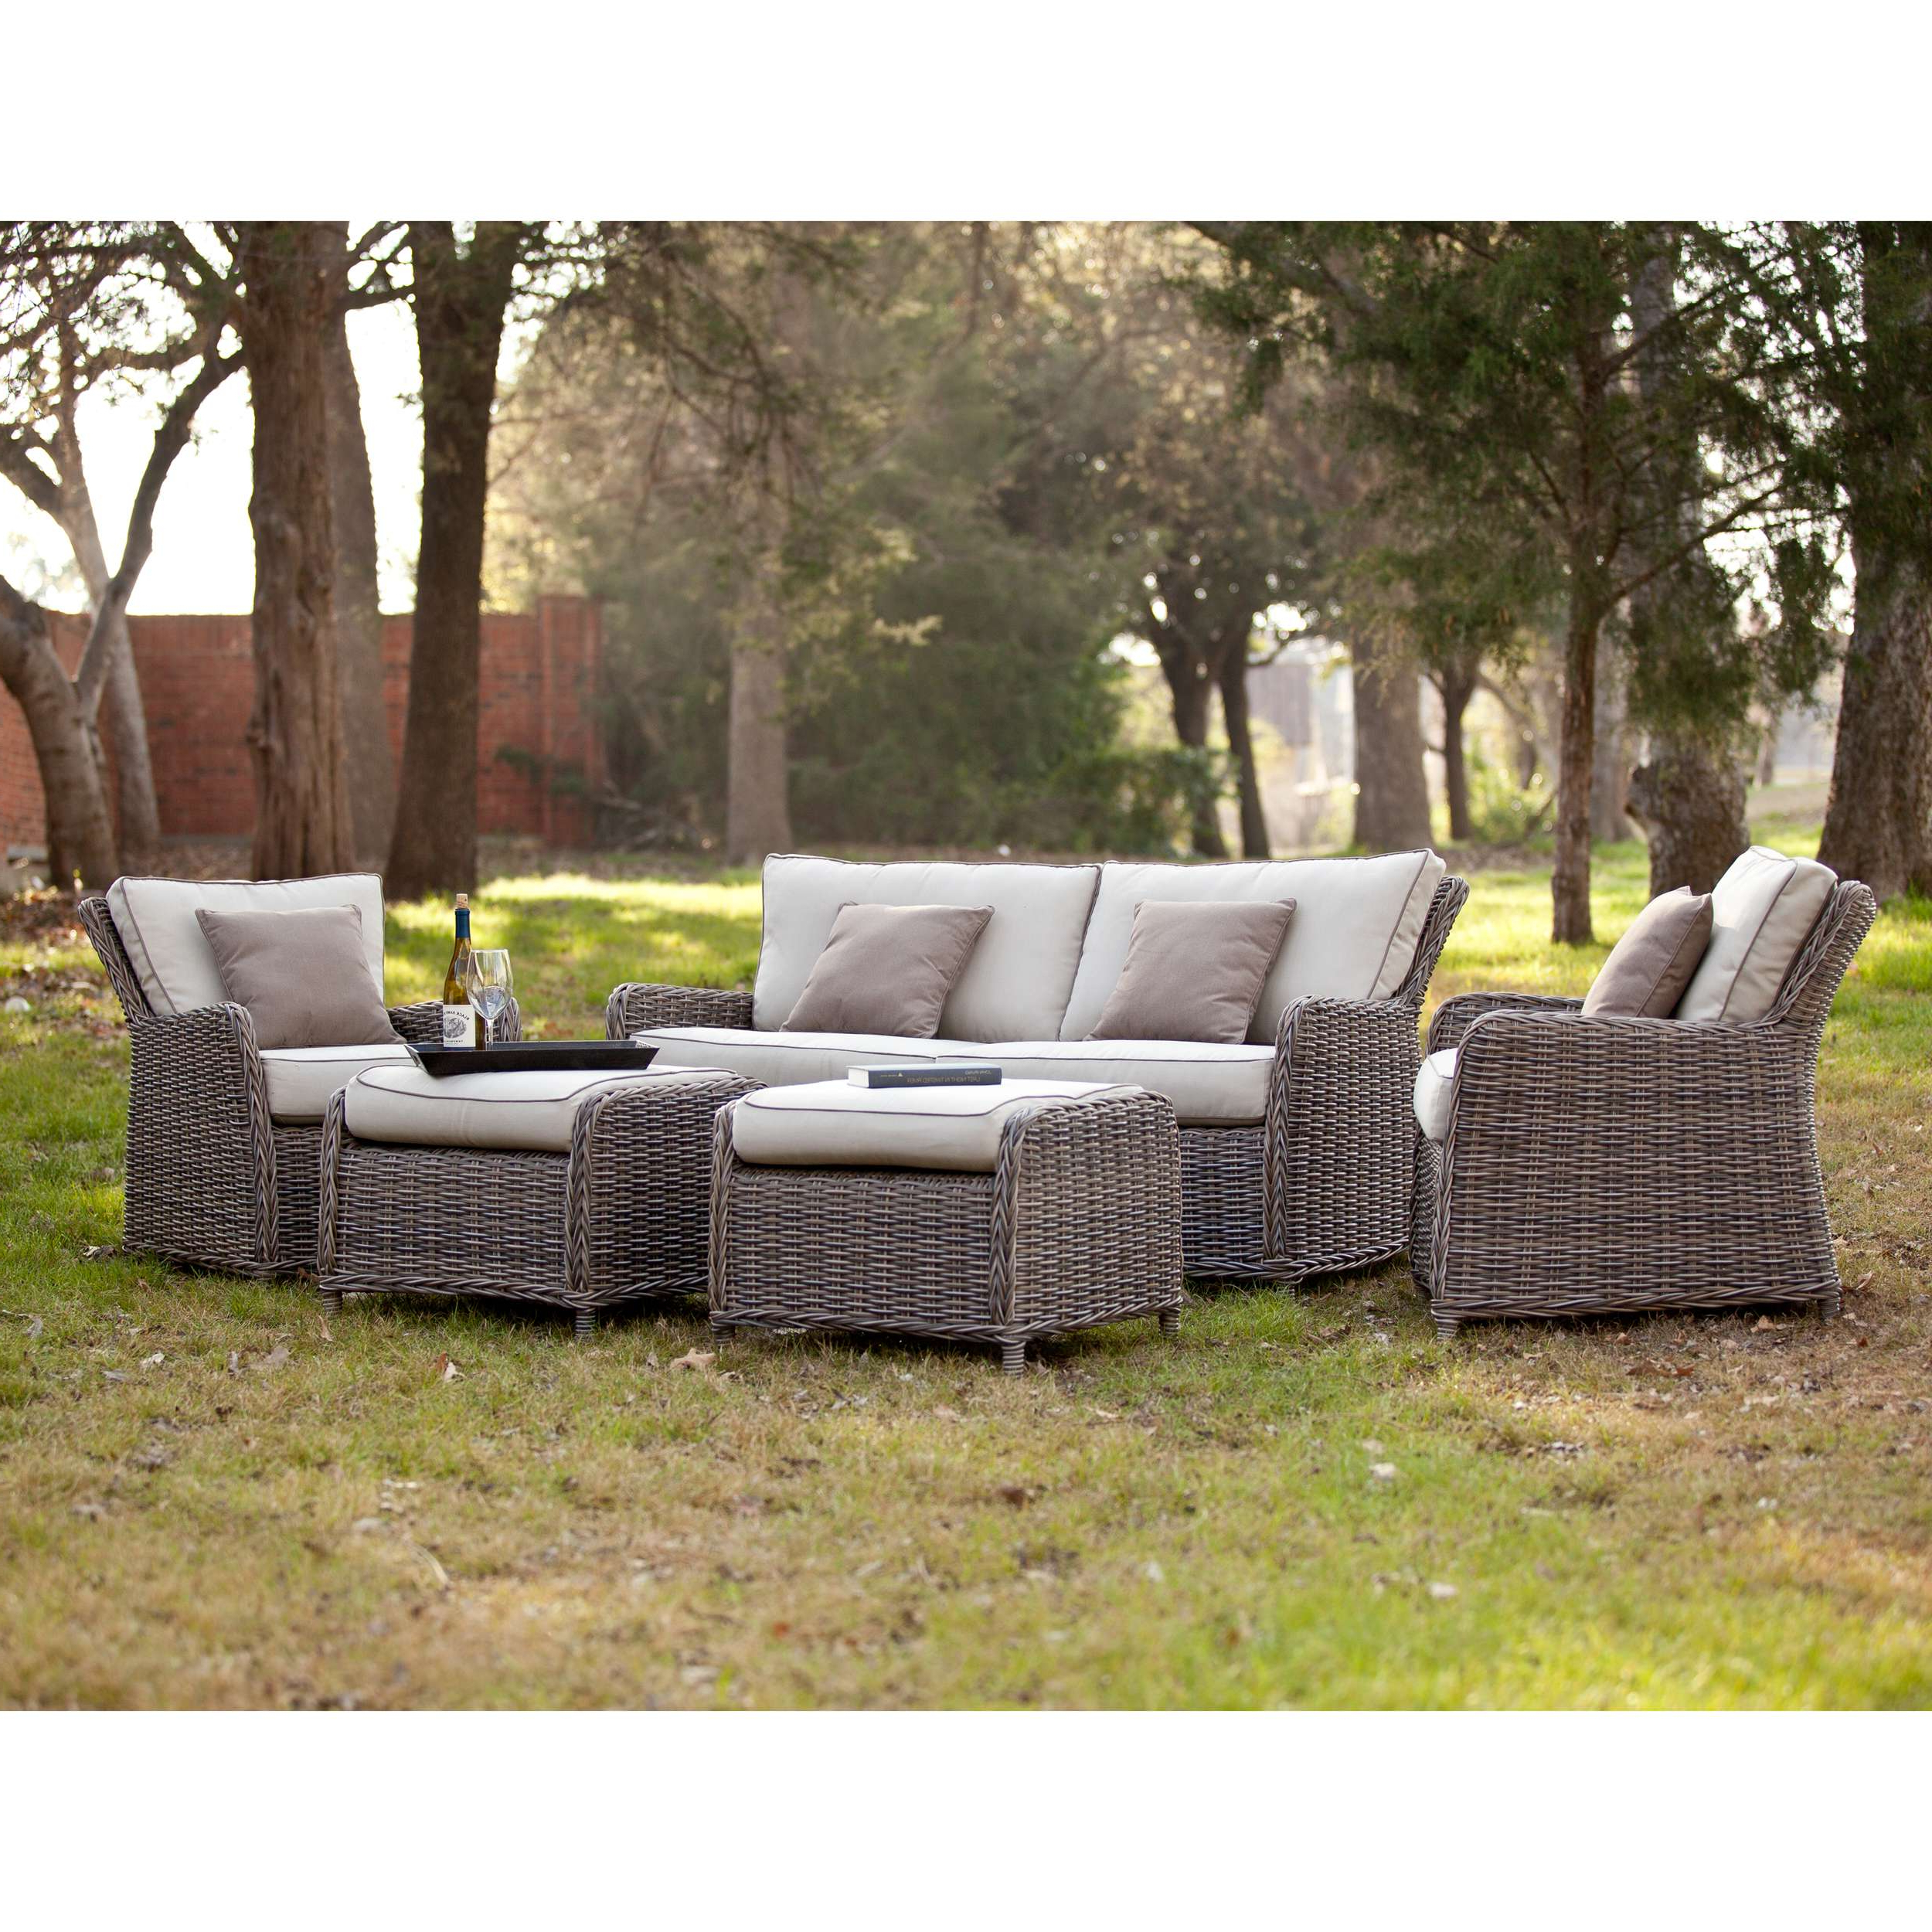 Latest Southern Enterprises Od5543 Intended For Avadi Outdoor Sofas & Ottomans 3 Piece Set (View 21 of 25)